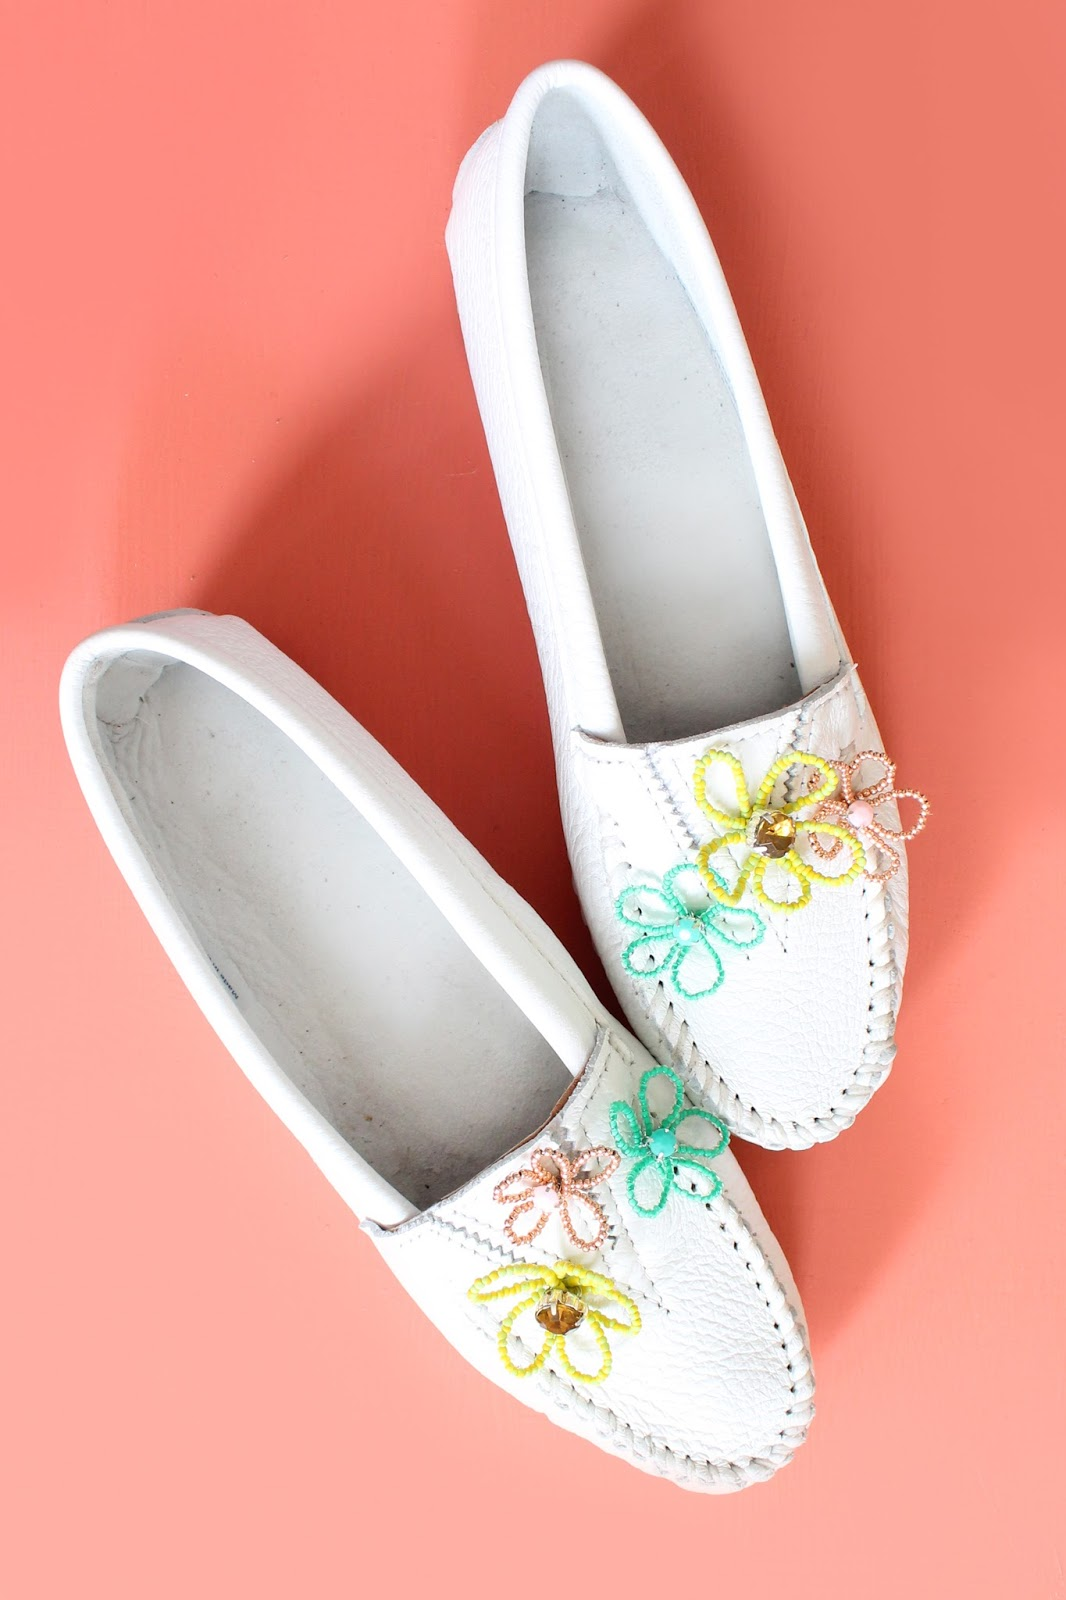 Make Floral Embellished Moccasins